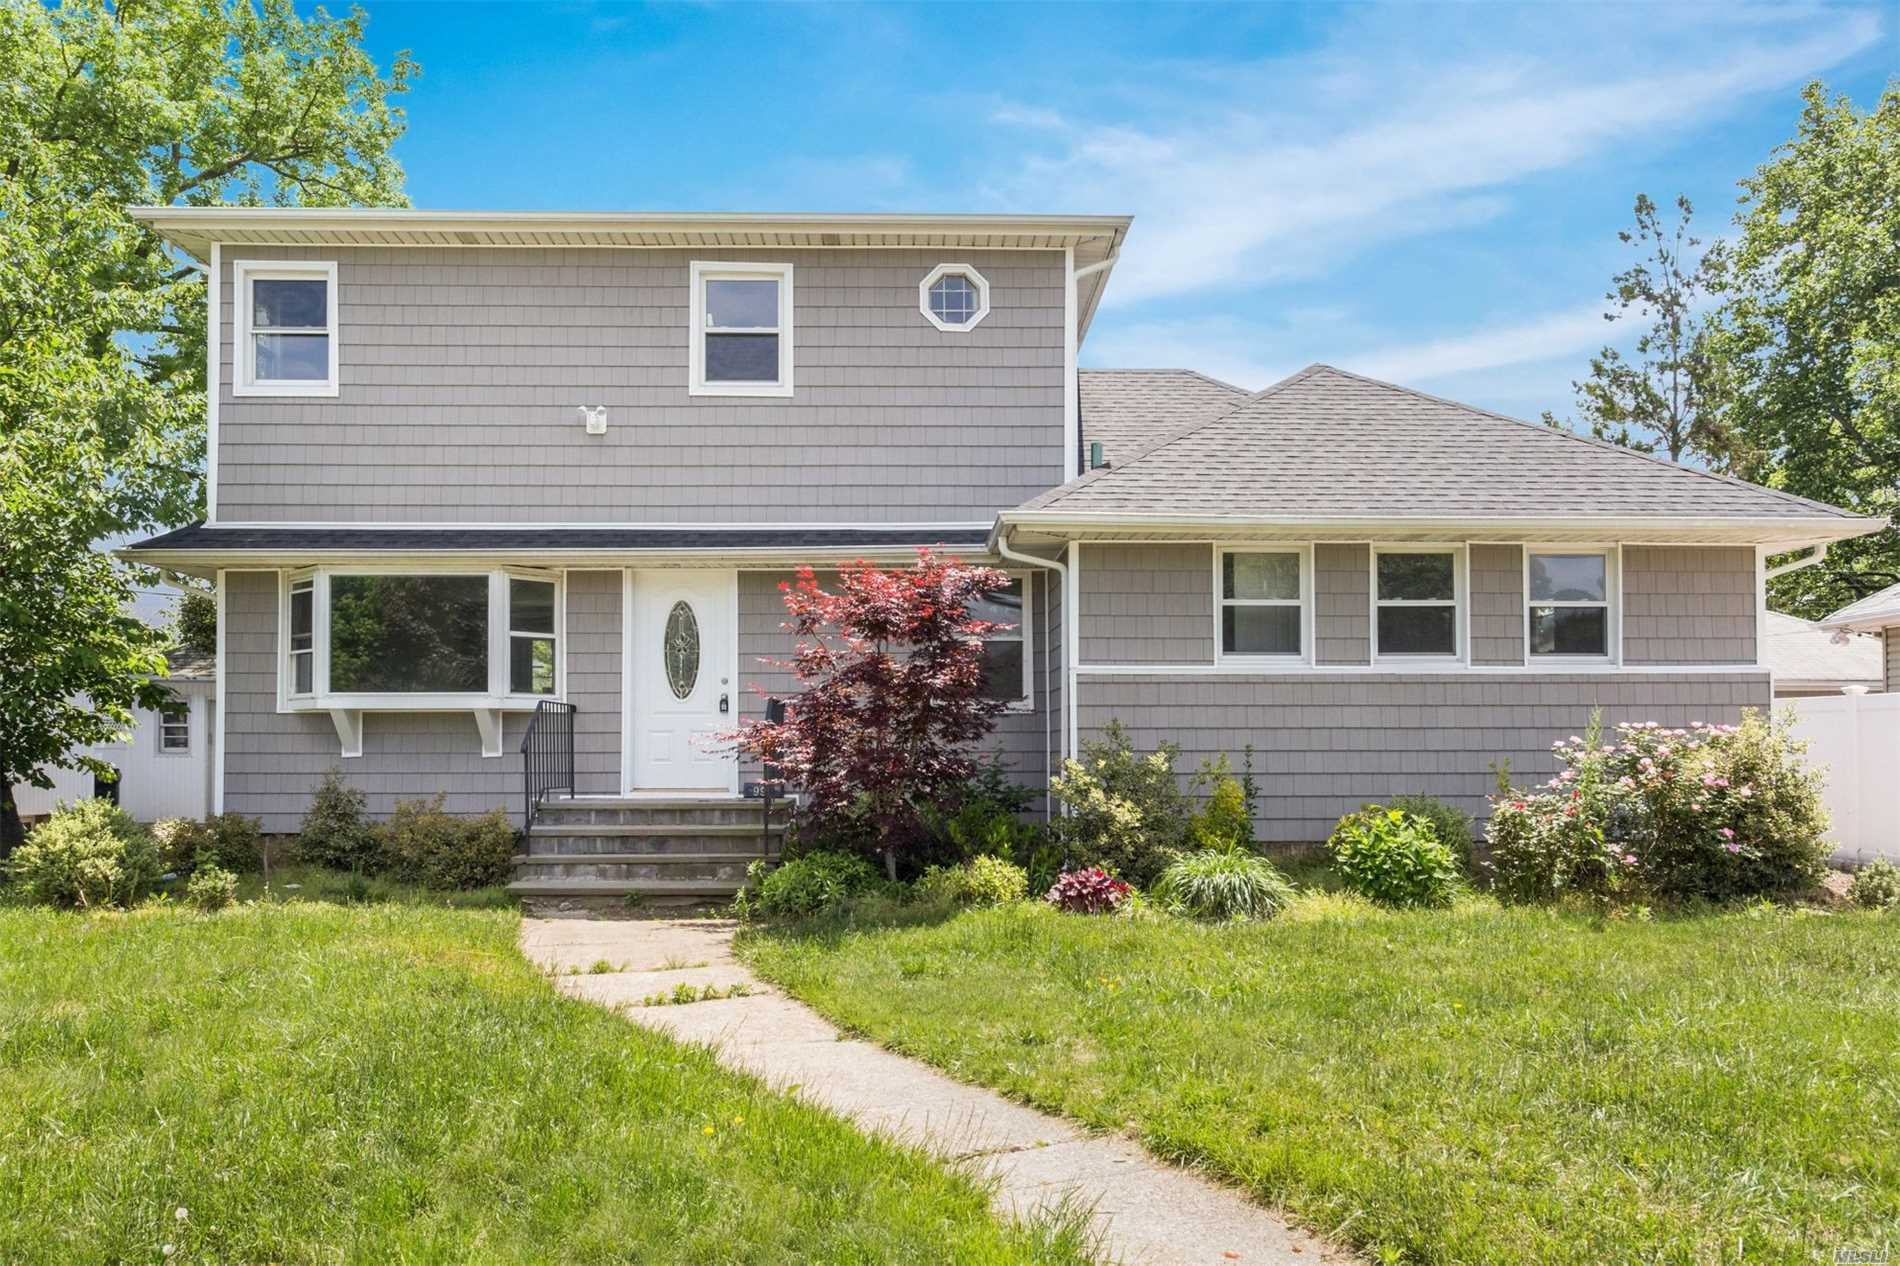 Photo of home for sale at 995 Mclean Ave, Wantagh NY